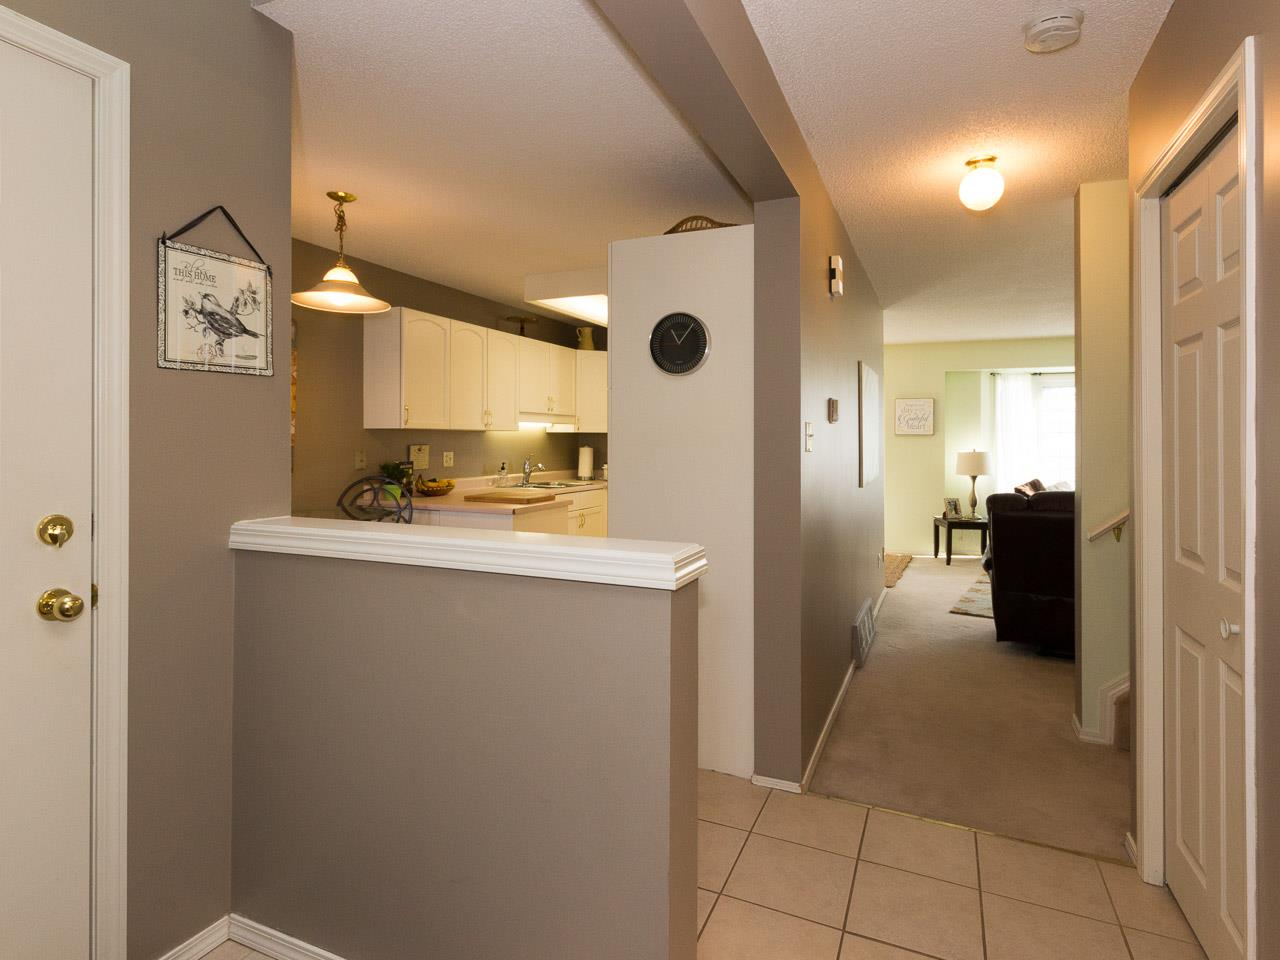 Photo 19: 27 2911 36 Street in Edmonton: Zone 29 Townhouse for sale : MLS® # E4081829